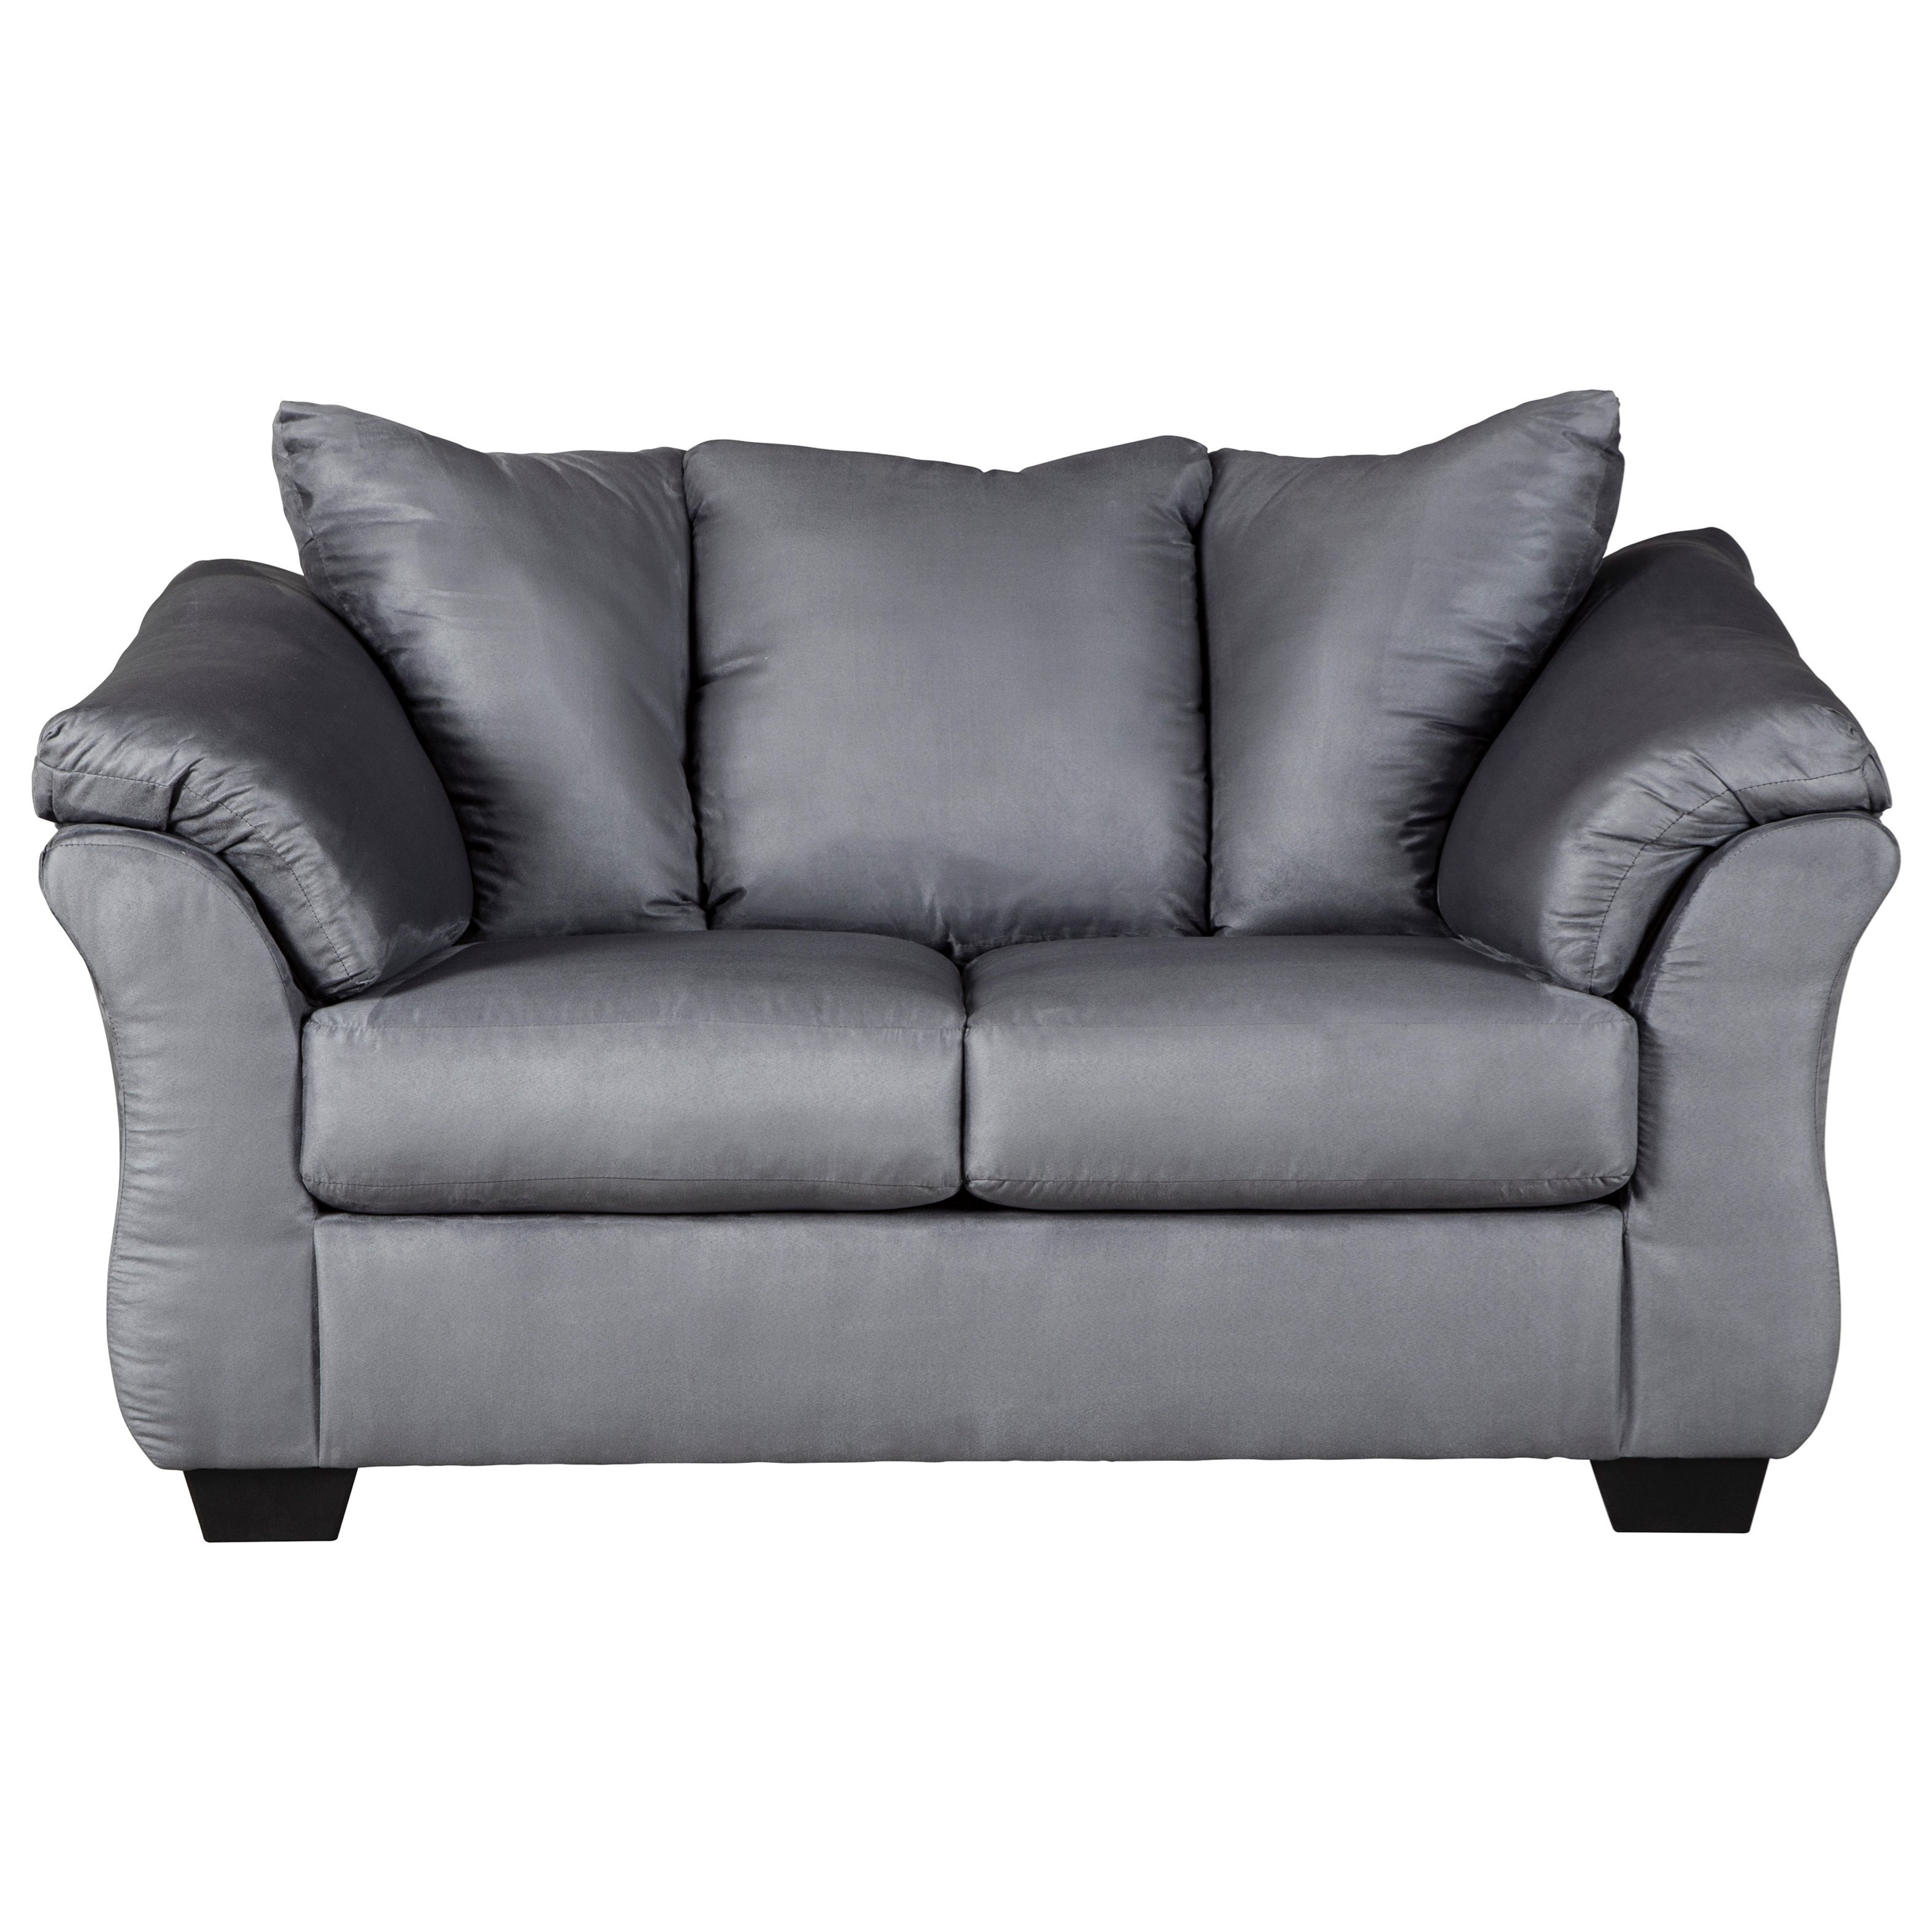 Darcy - Steel Stationary Loveseat by Ashley (Signature Design) at Johnny Janosik